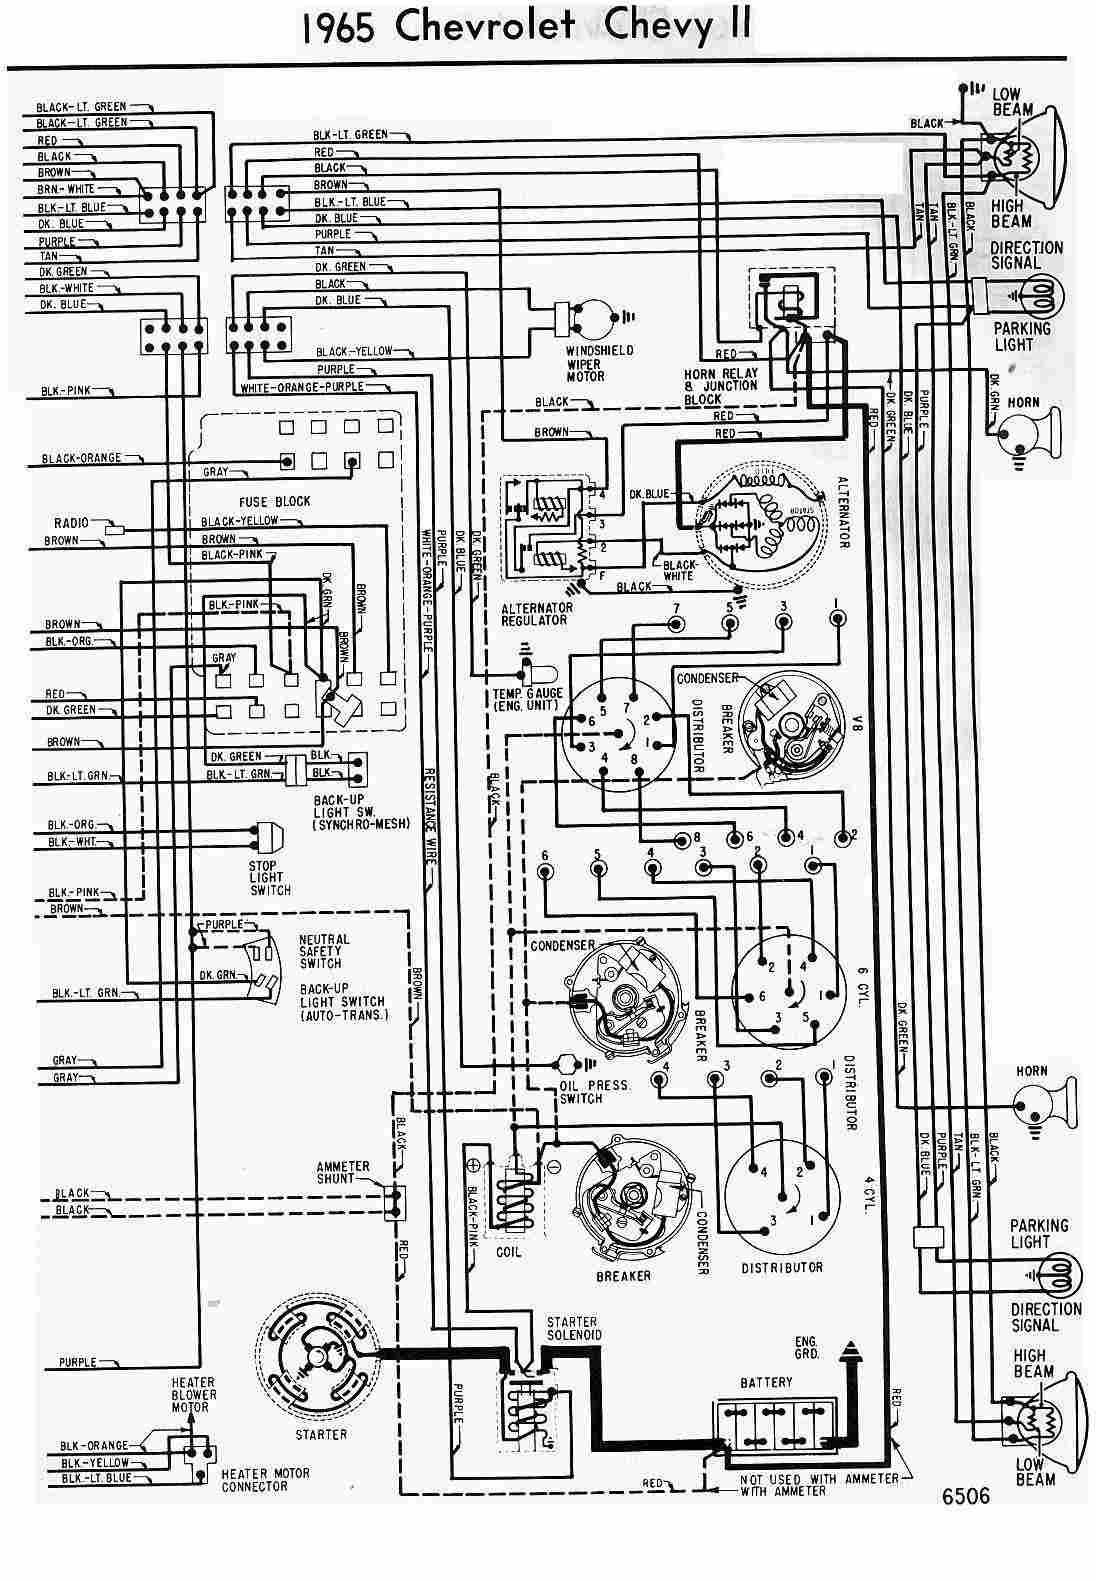 Chevrolet Car Manuals Wiring Diagrams Pdf Fault Codes Gm Engine Schematics Download